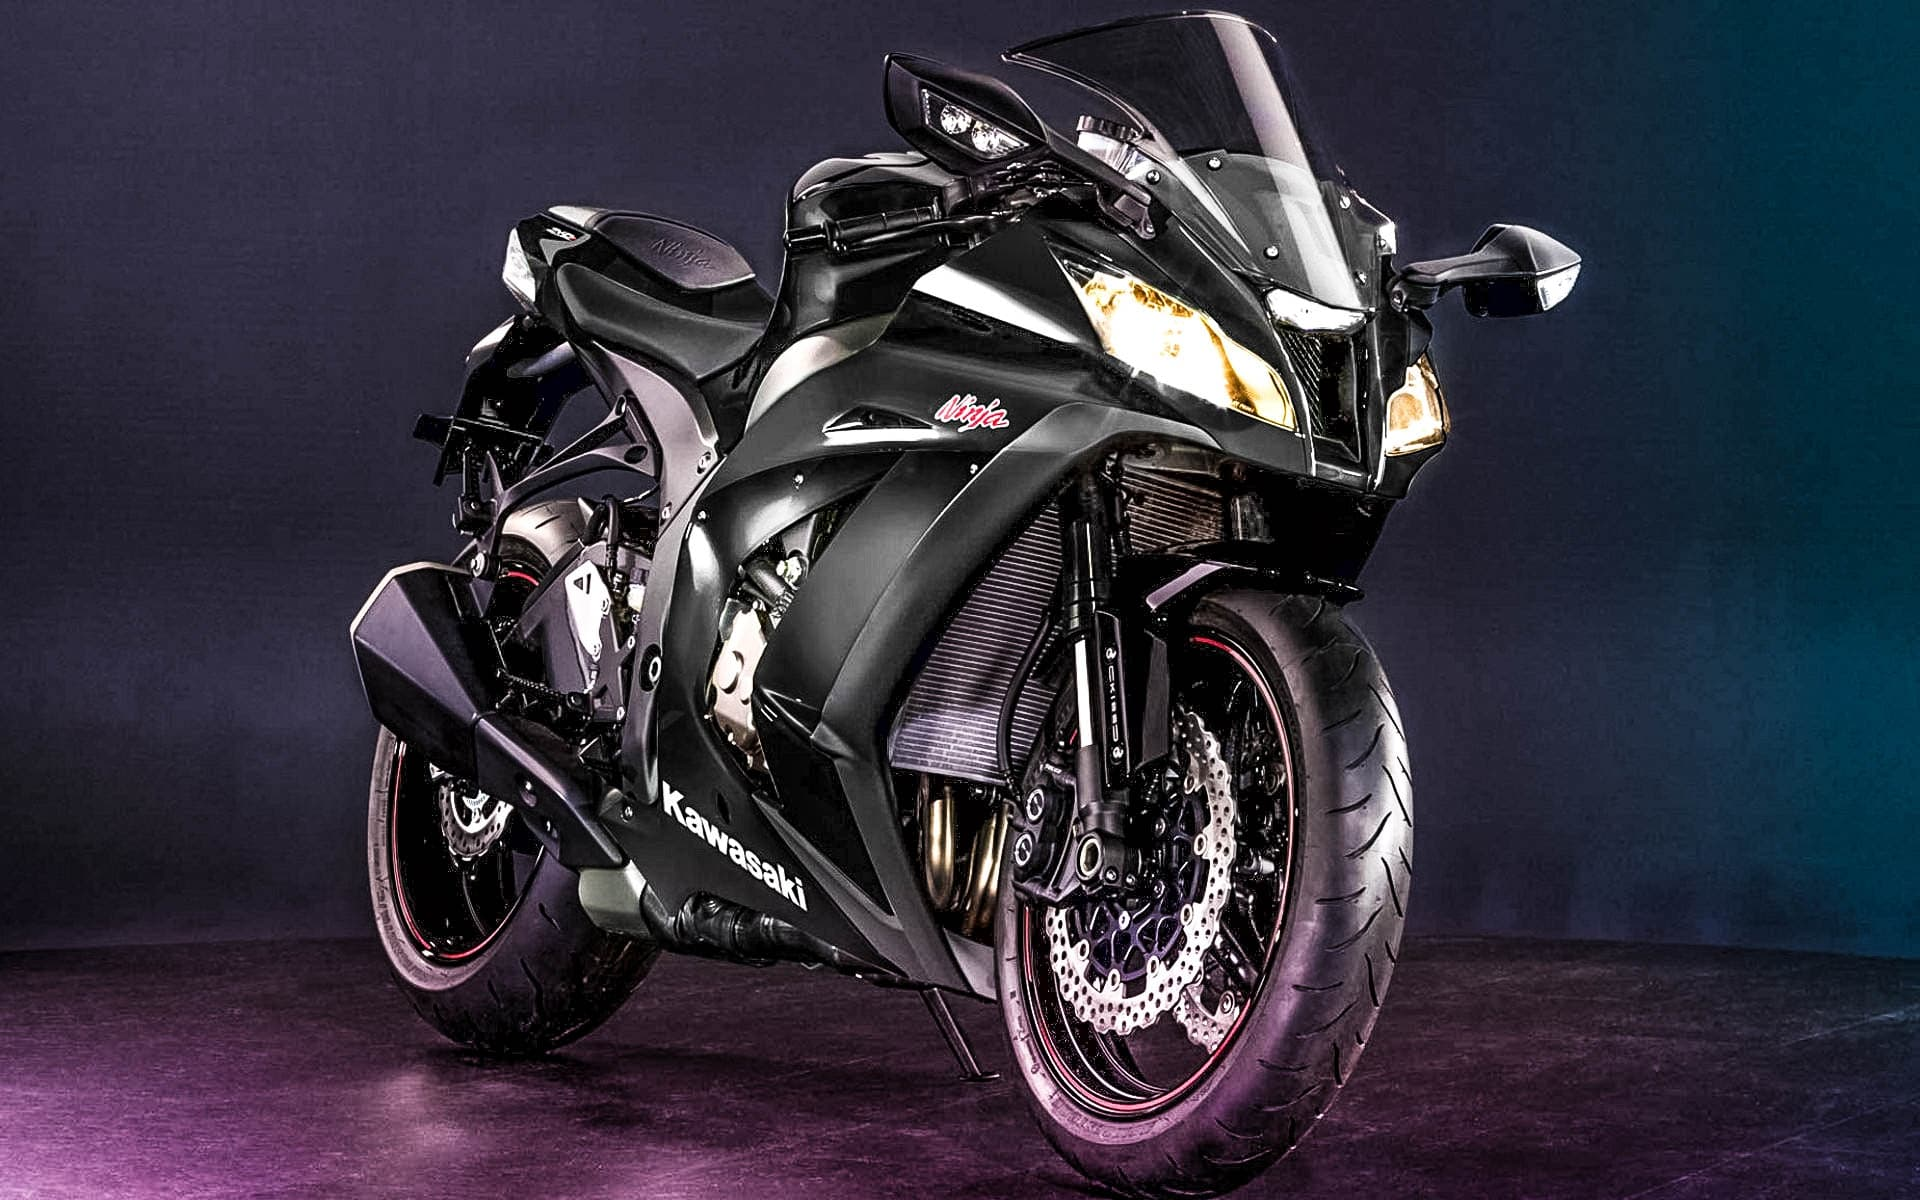 Kawasaki Ninja 250r Black Wallpapers Widescreen HD